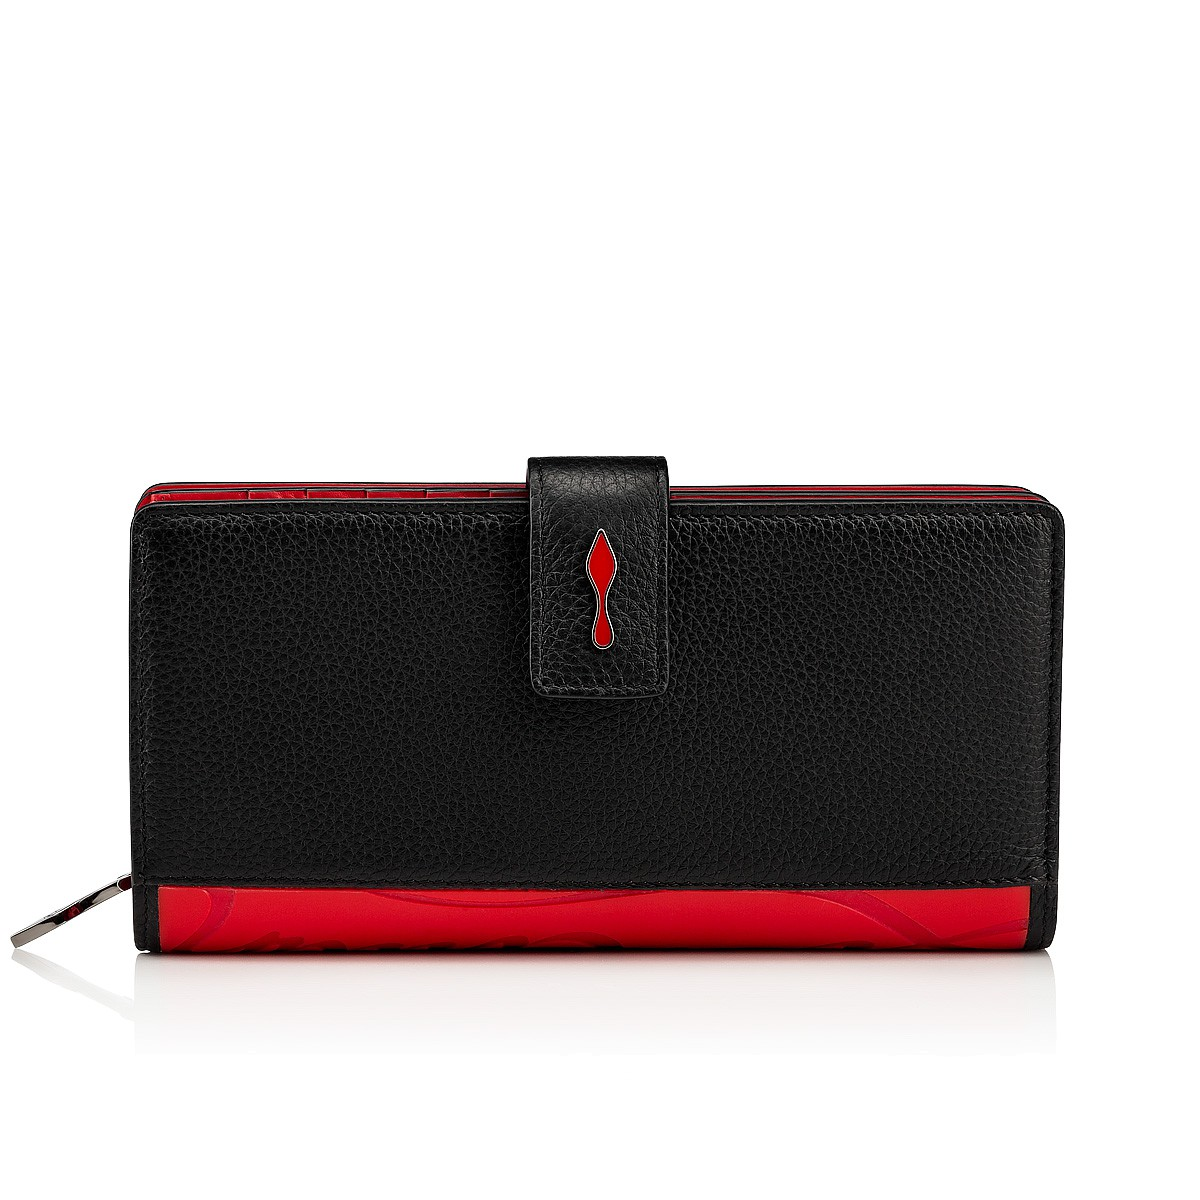 Small Leather Goods - Paloma Wallet - Christian Louboutin